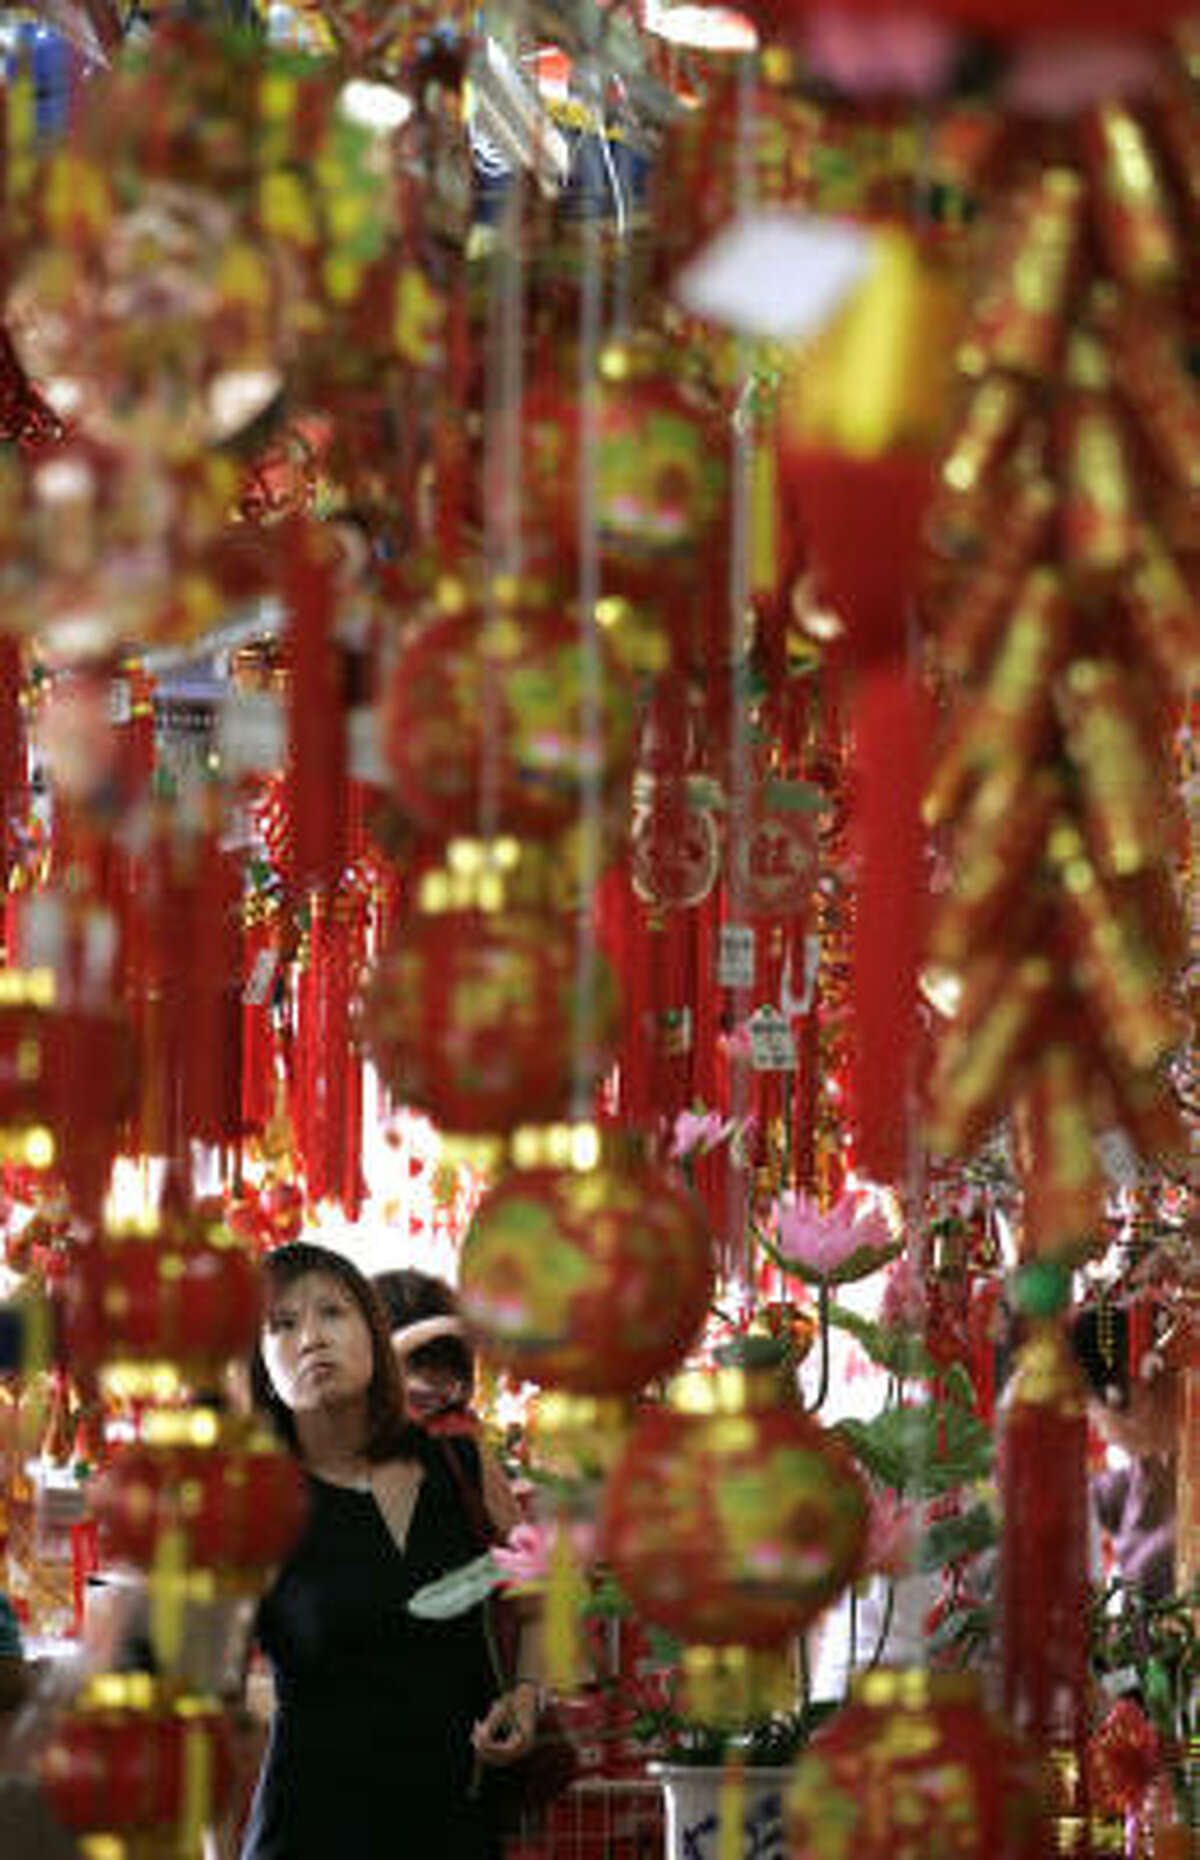 Red and gold These are the most popular colors for decorations because they symbolize wealth and good fortune.